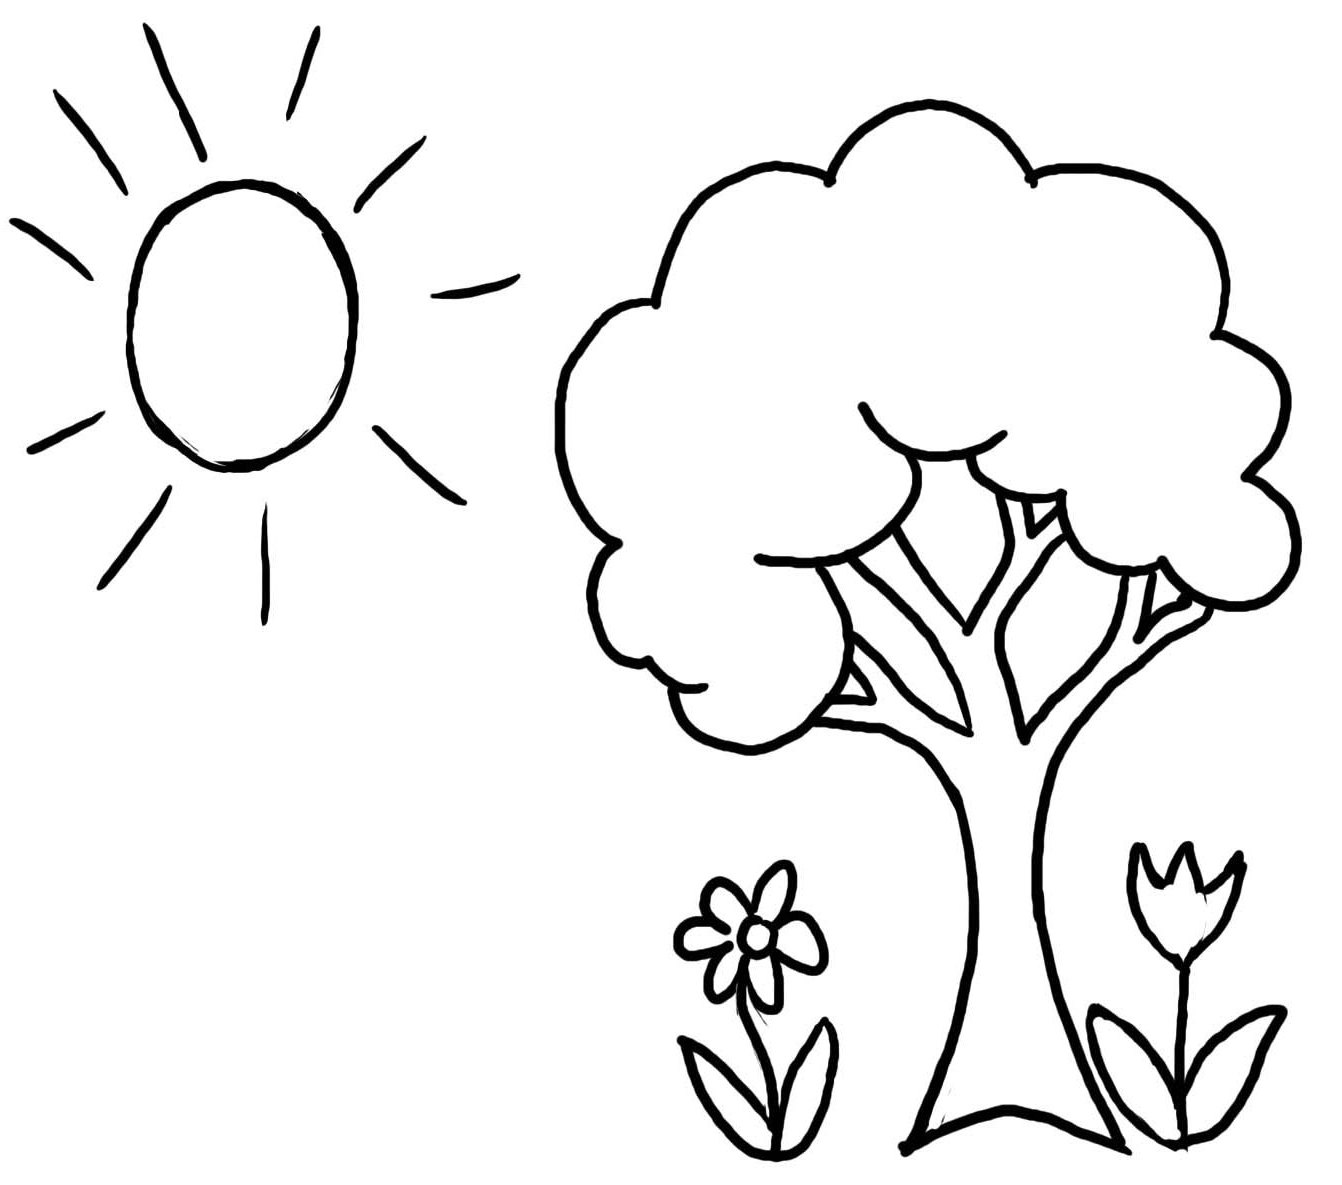 tree coloring tree coloring pages for adults free printable tree tree coloring